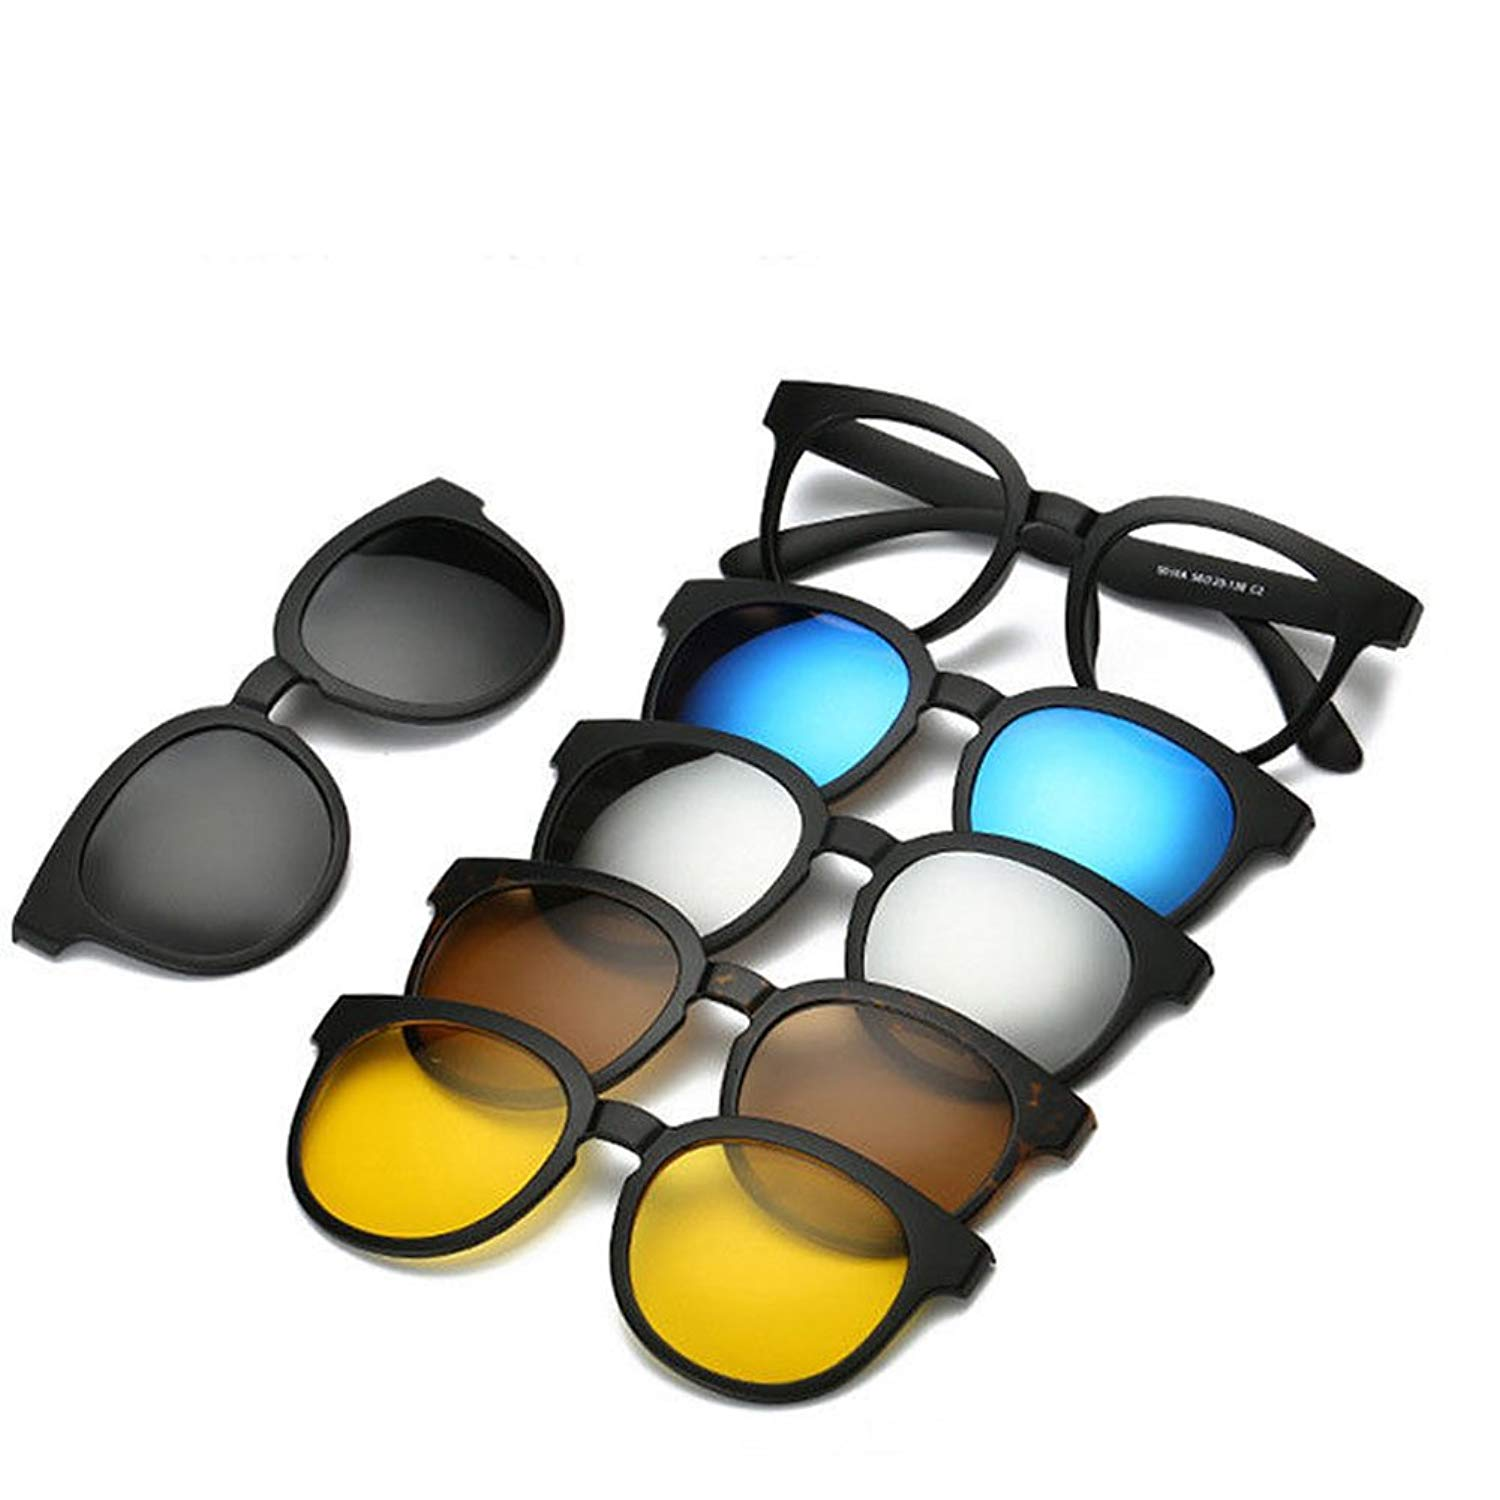 8580c525e3 Get Quotations · Dragon Honor 5 in 1 Magnetic Lens Replaceable Sunglasses  Clip on Sunglasses Eyeglass